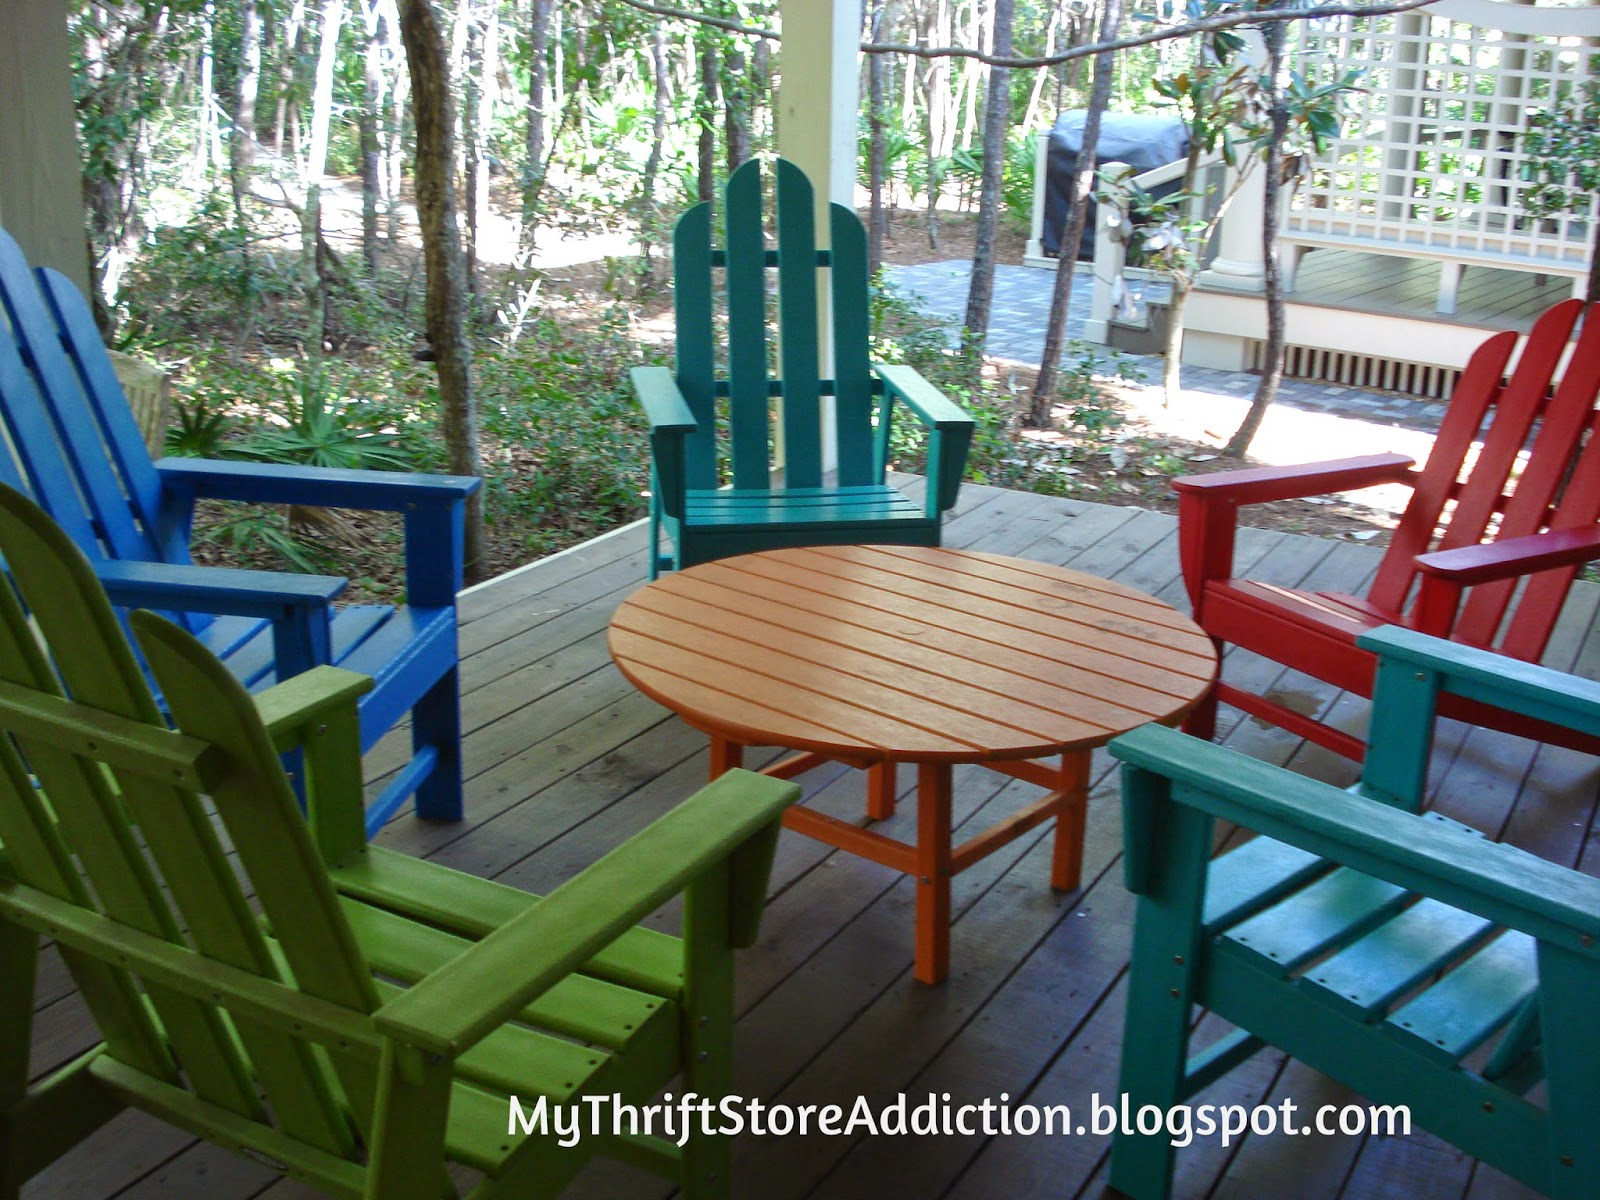 outdoor dream chair beds for sale my thrift store addiction